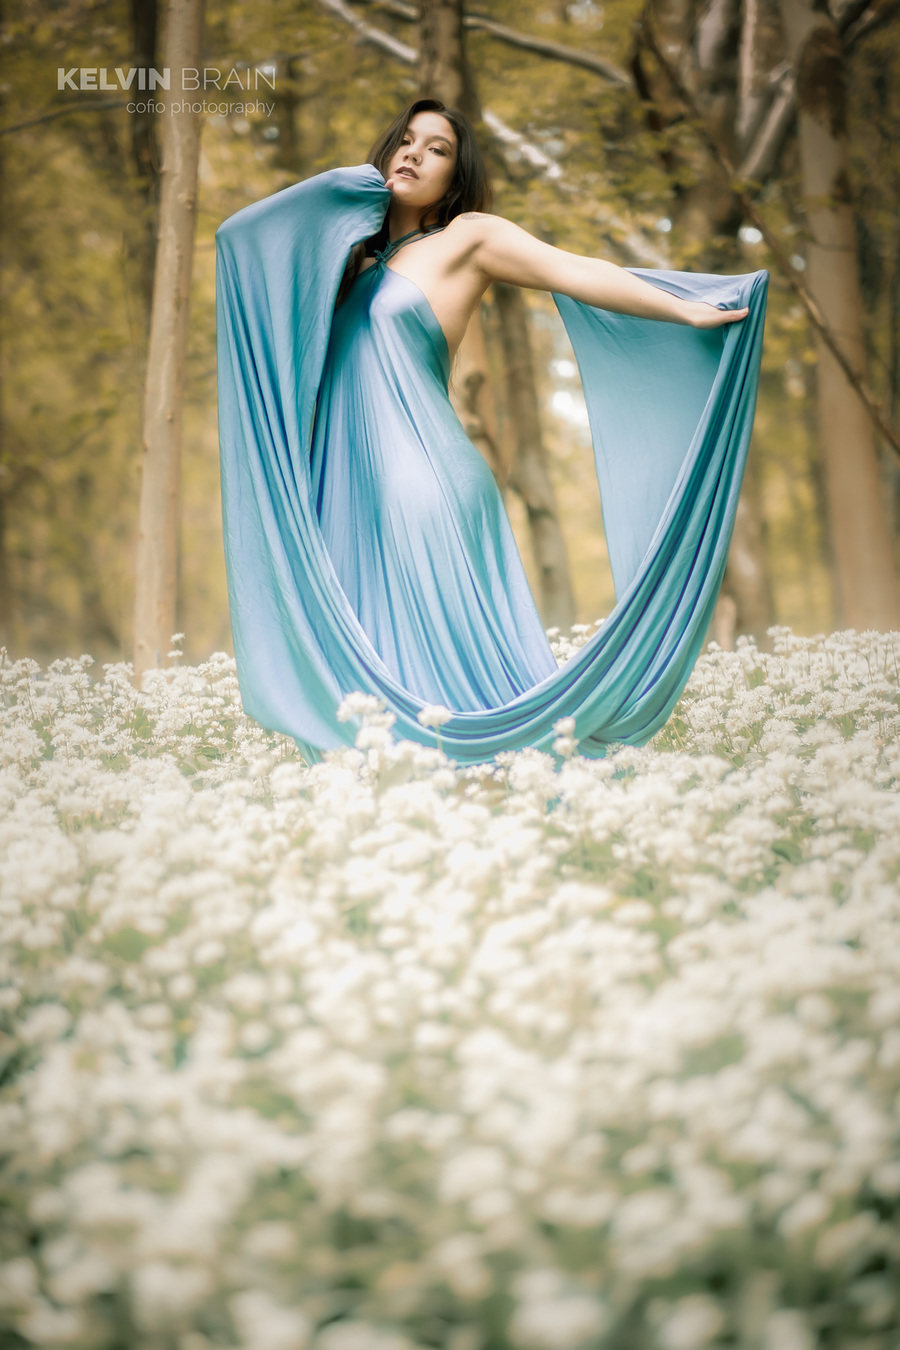 Forest Freedom / Photography by Kelvin Brain - Mill-Lodge Brecon Beacons, Model ModelMaya, Post processing by Kelvin Brain - Mill-Lodge Brecon Beacons, Designer Falcieri Designs / Uploaded 27th May 2017 @ 12:08 PM